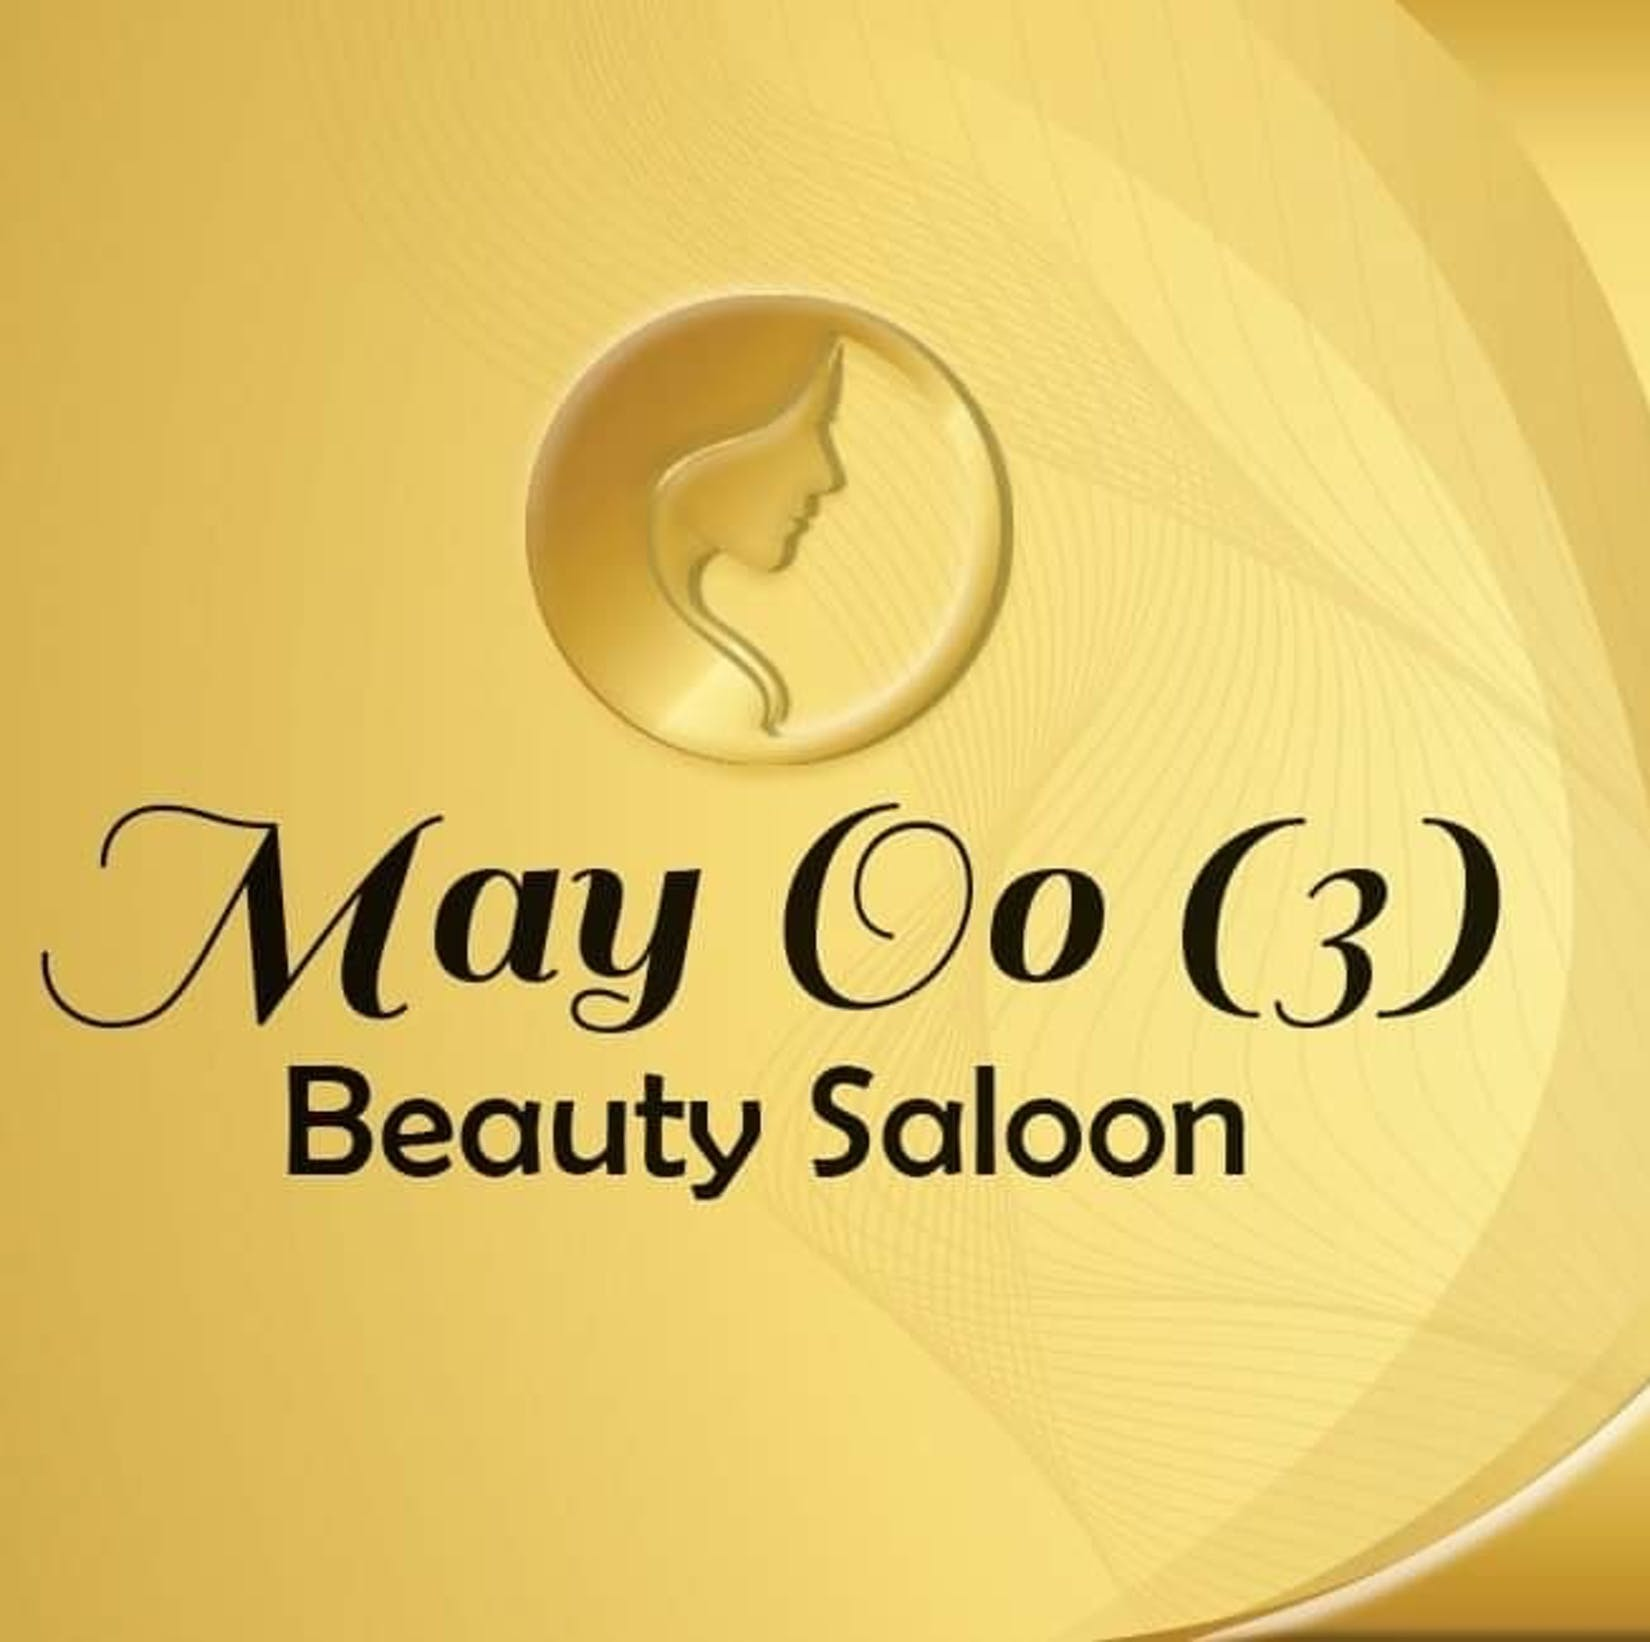 May oo 3 beauty sloon & spa - lady only | Beauty